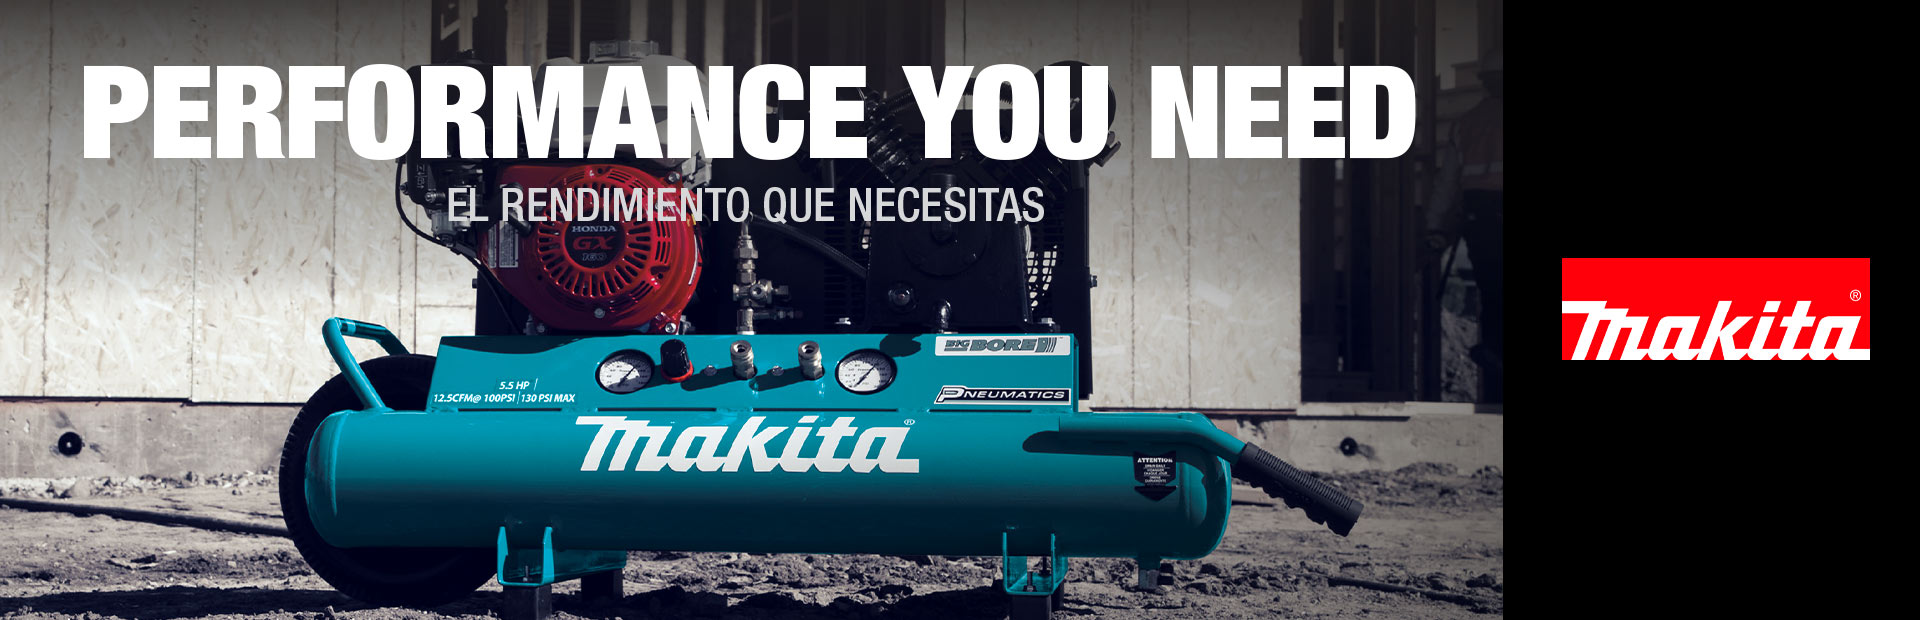 Makita: Performance You Need